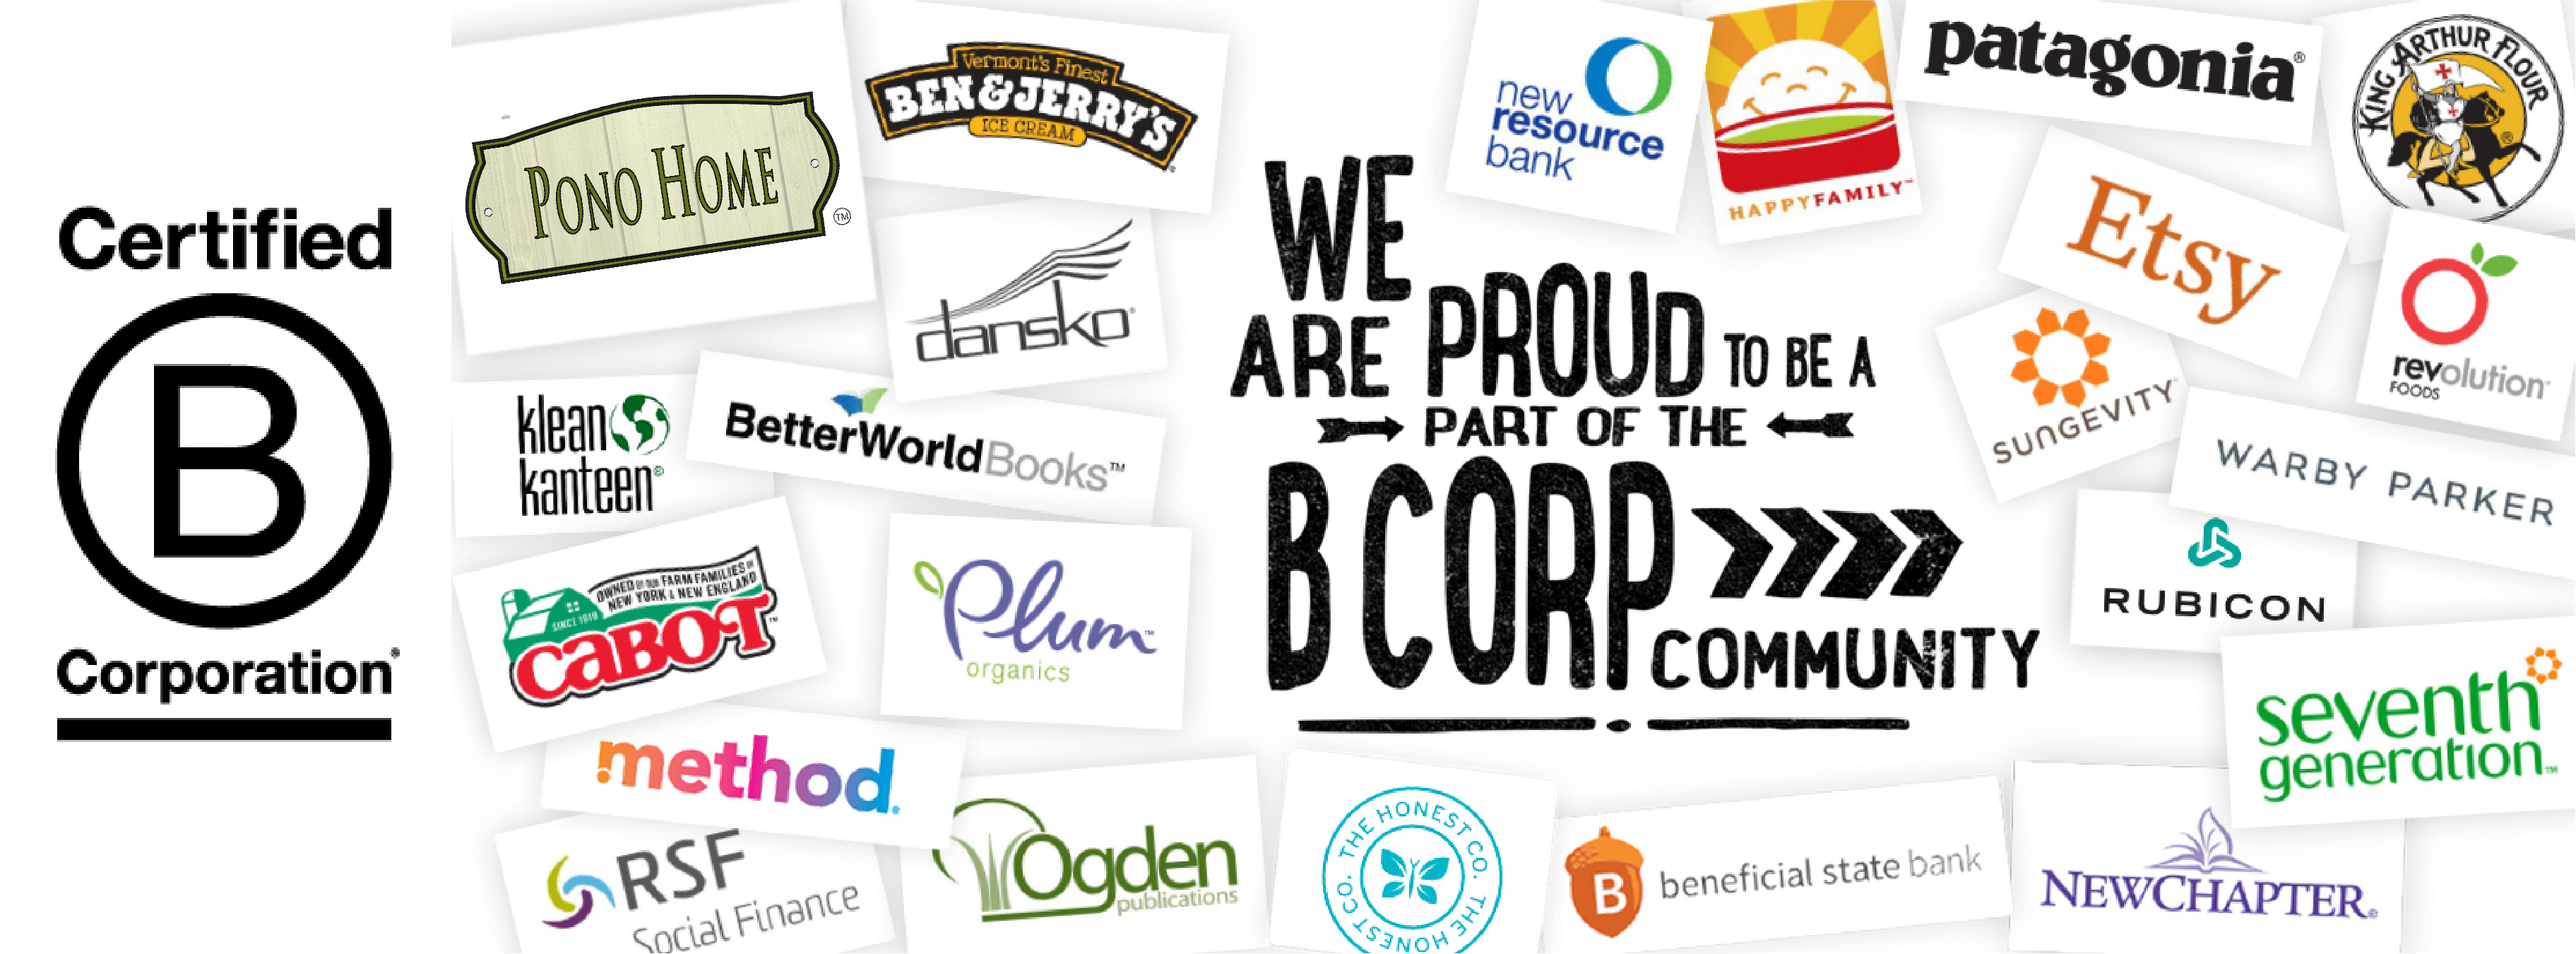 Were A Certified B Corporation Pono Home